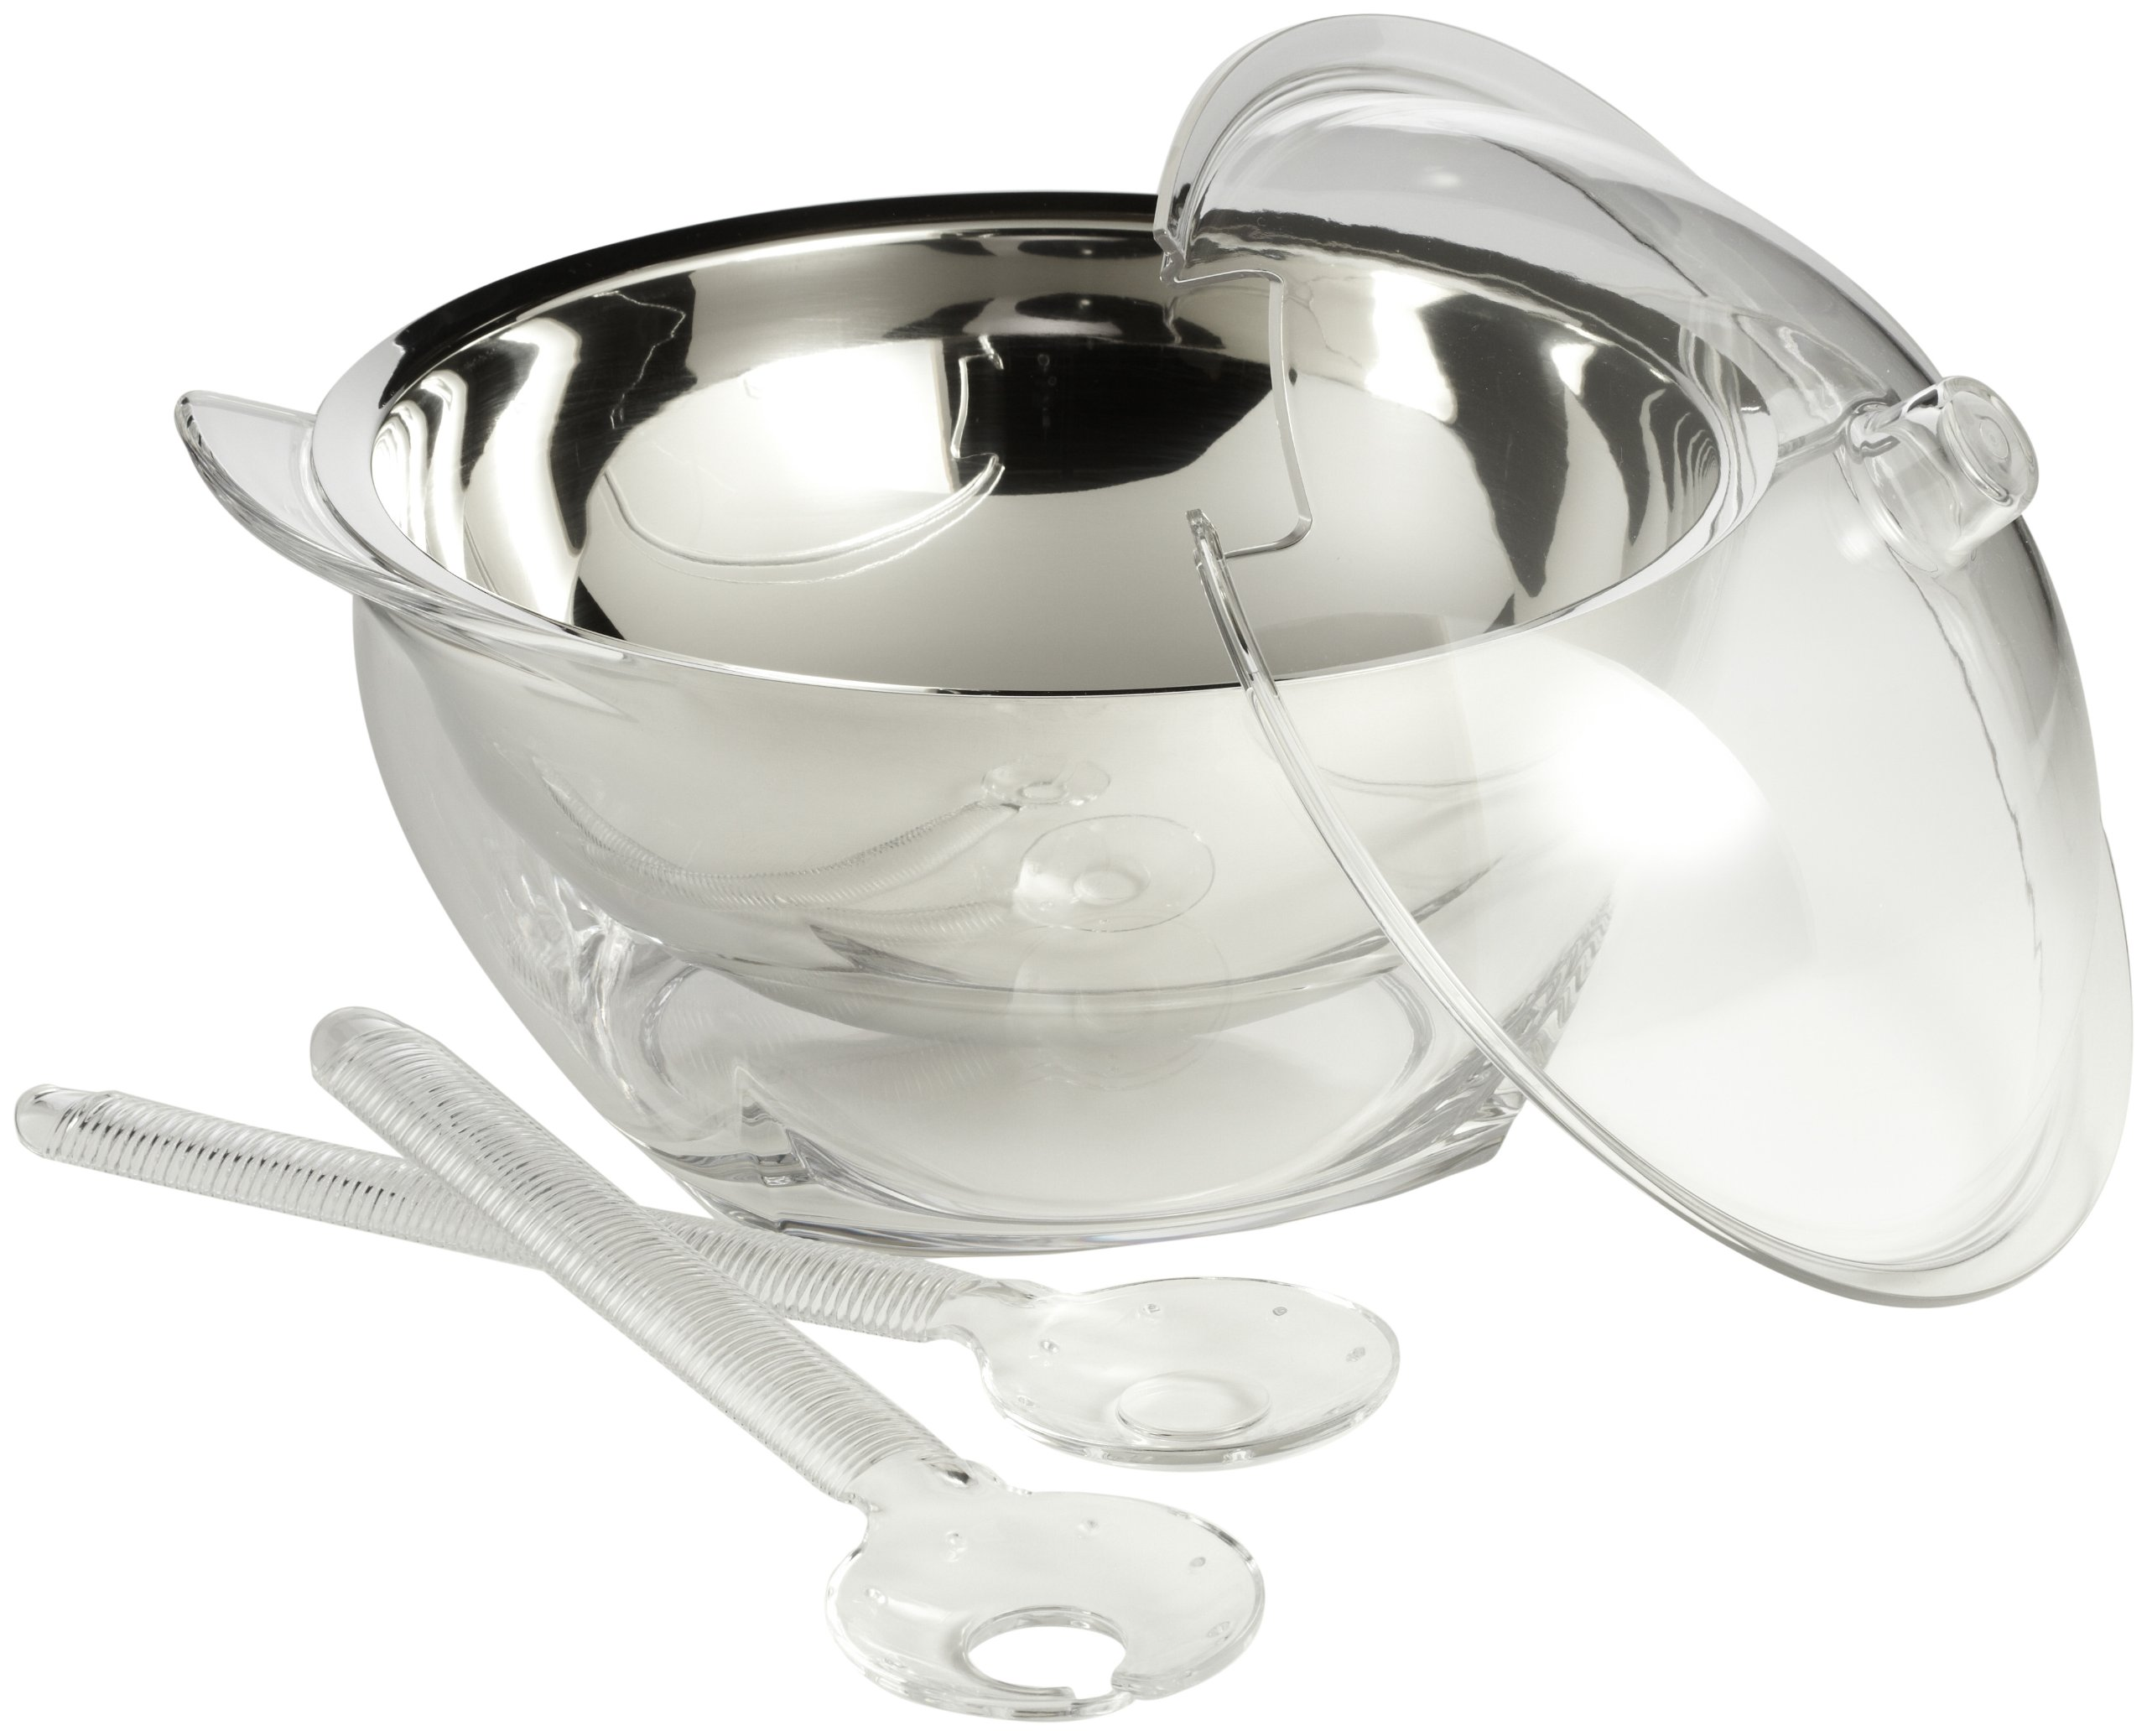 Prodyne Iced Salad with Dome Lid